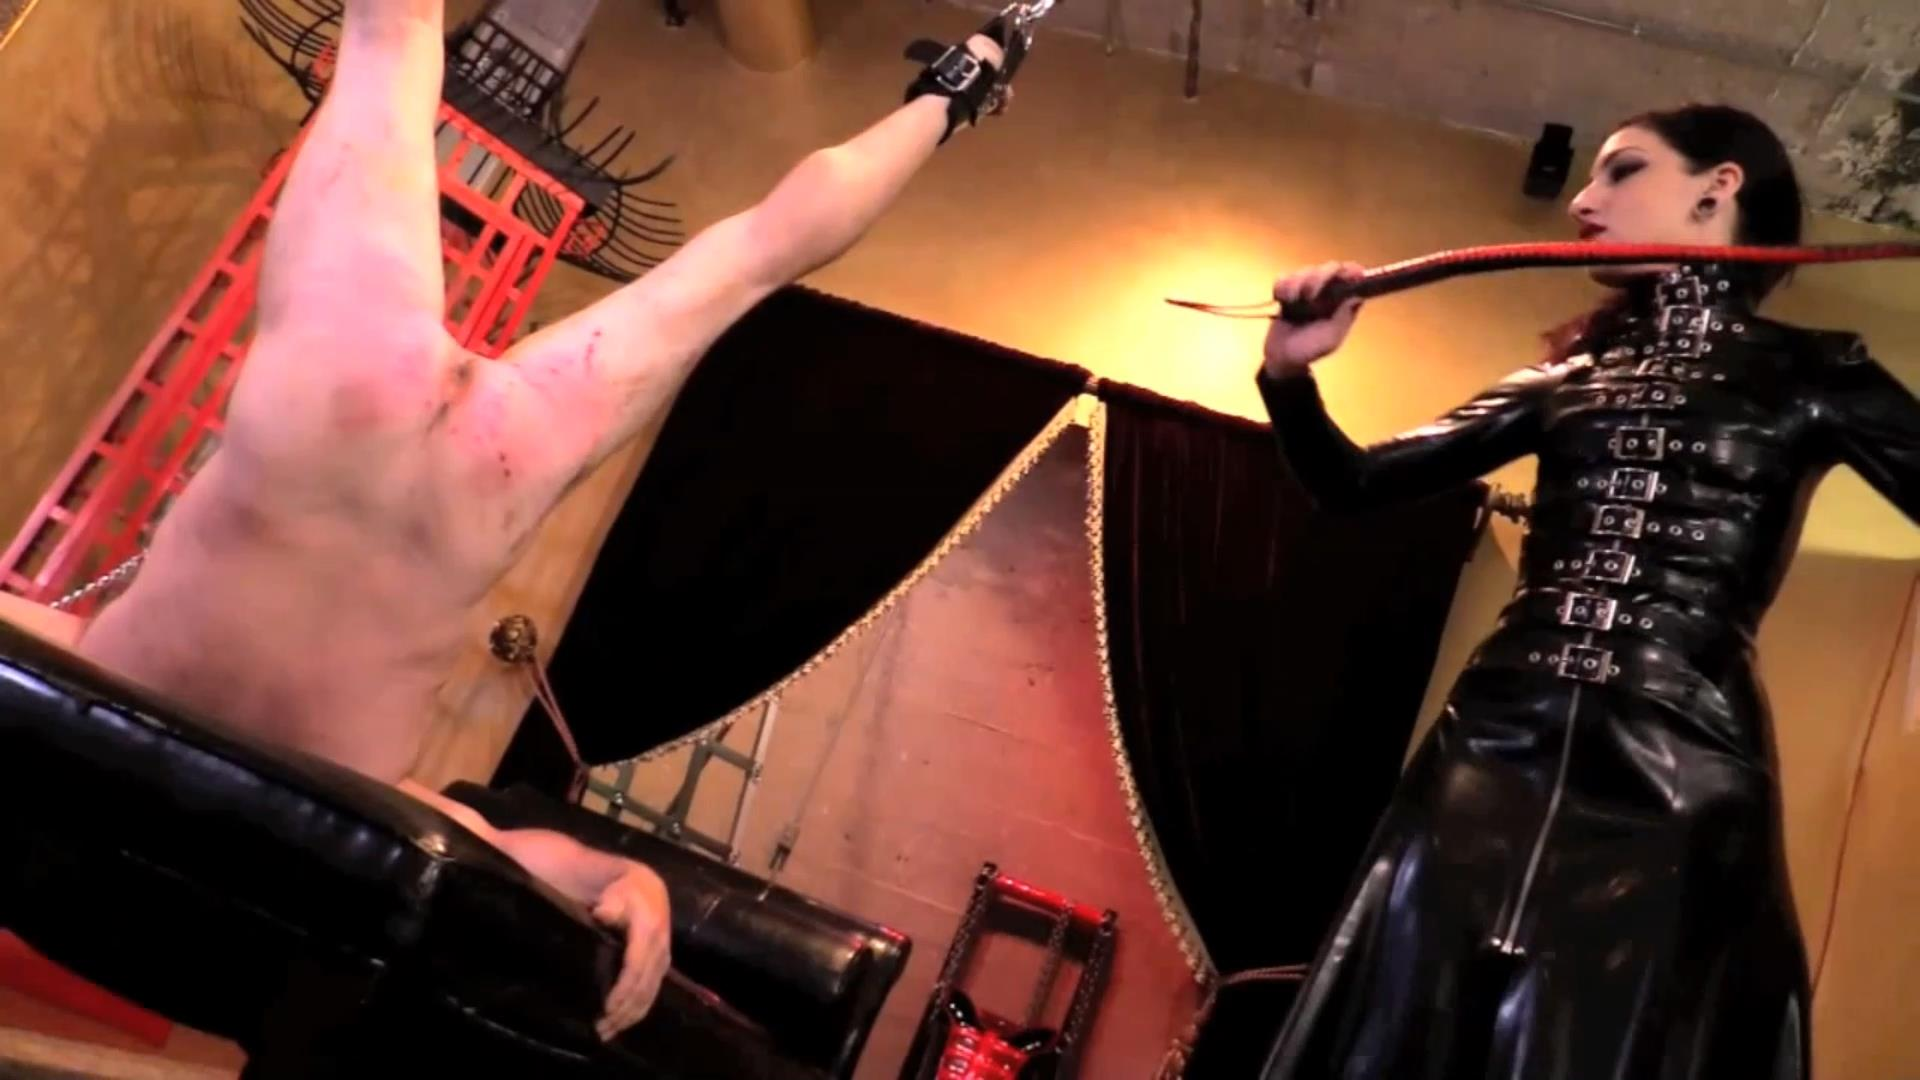 Cybill Troy In Scene: Hung And Caned - CYBILLTROY - FULL HD/1080p/MP4